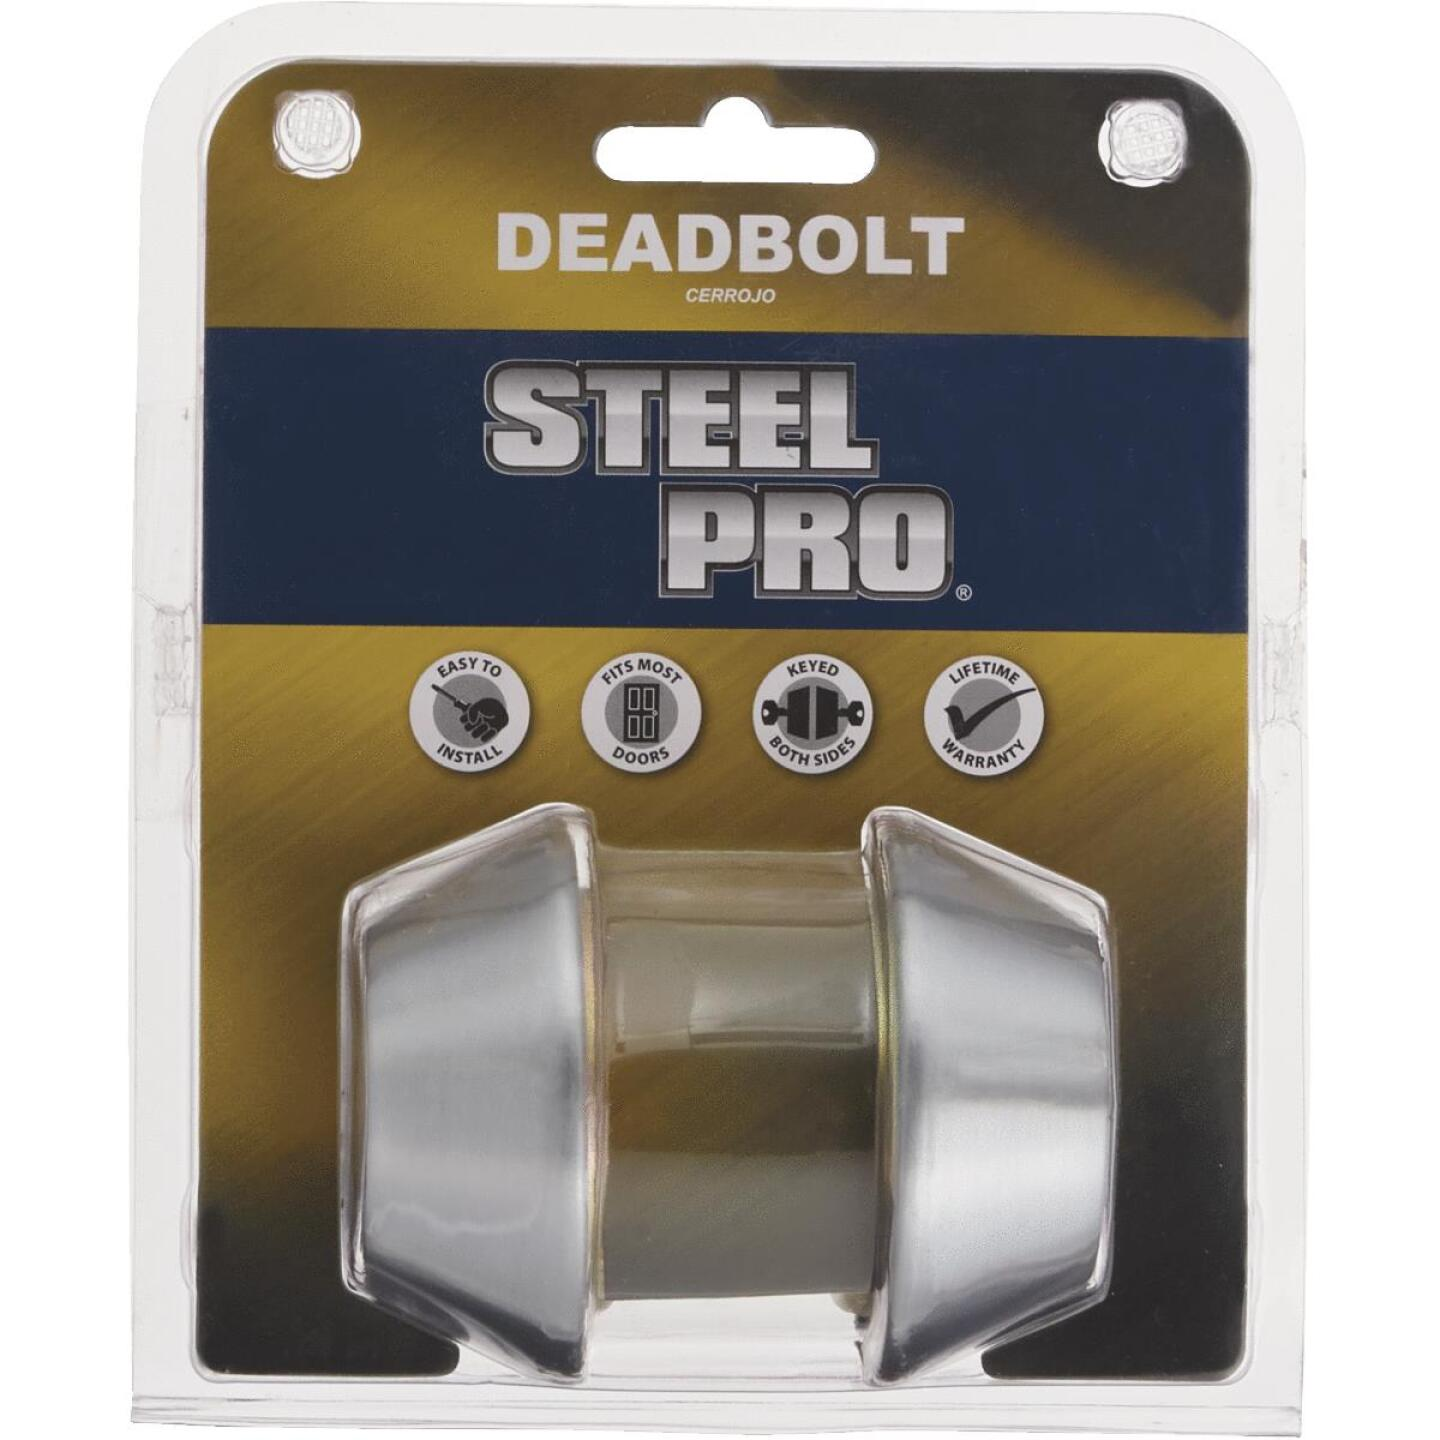 Steel Pro Satin Chrome Kwikset Double Cylinder Deadbolt Image 2